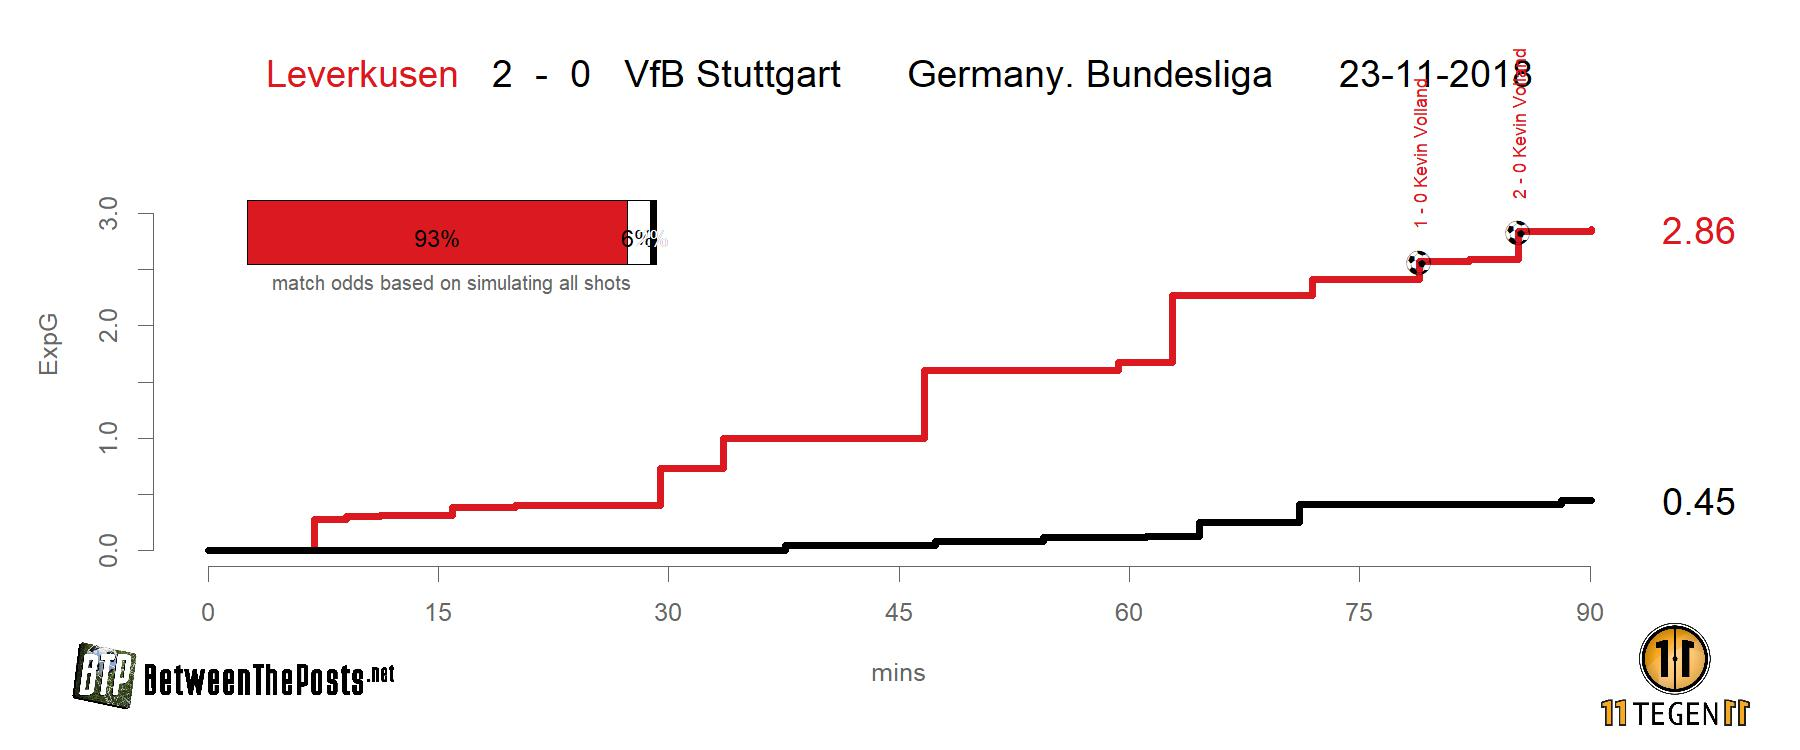 Expected goals plot Bayer Leverkusen - VfB Stuttgart 2-0